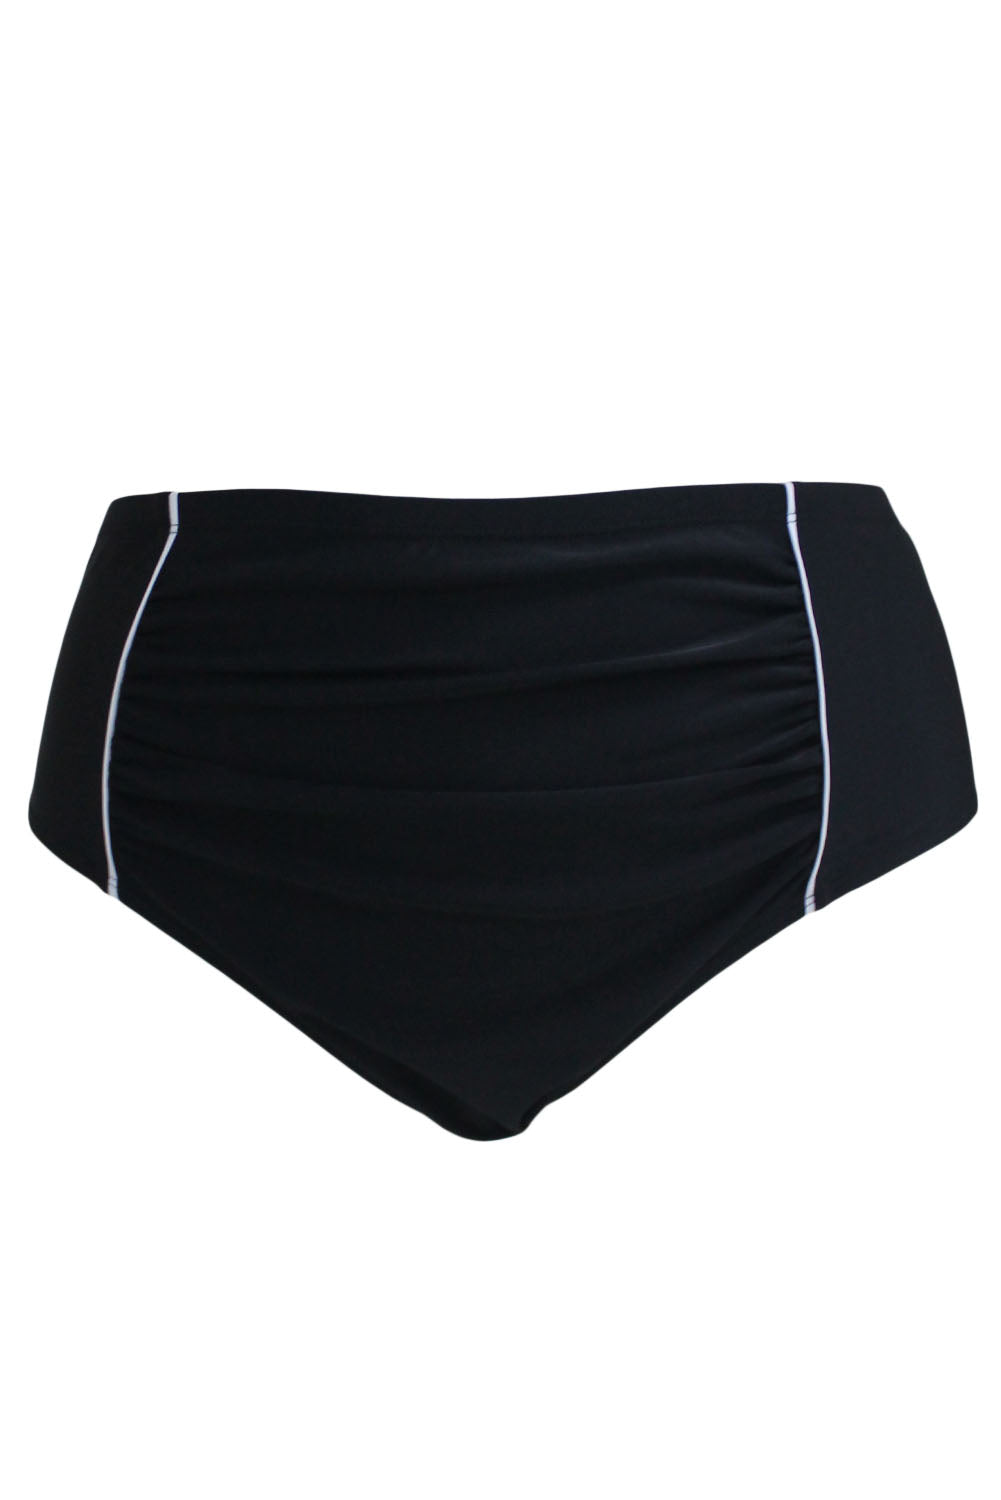 White Piping Stripes Accent Black High Waist Swim Briefs